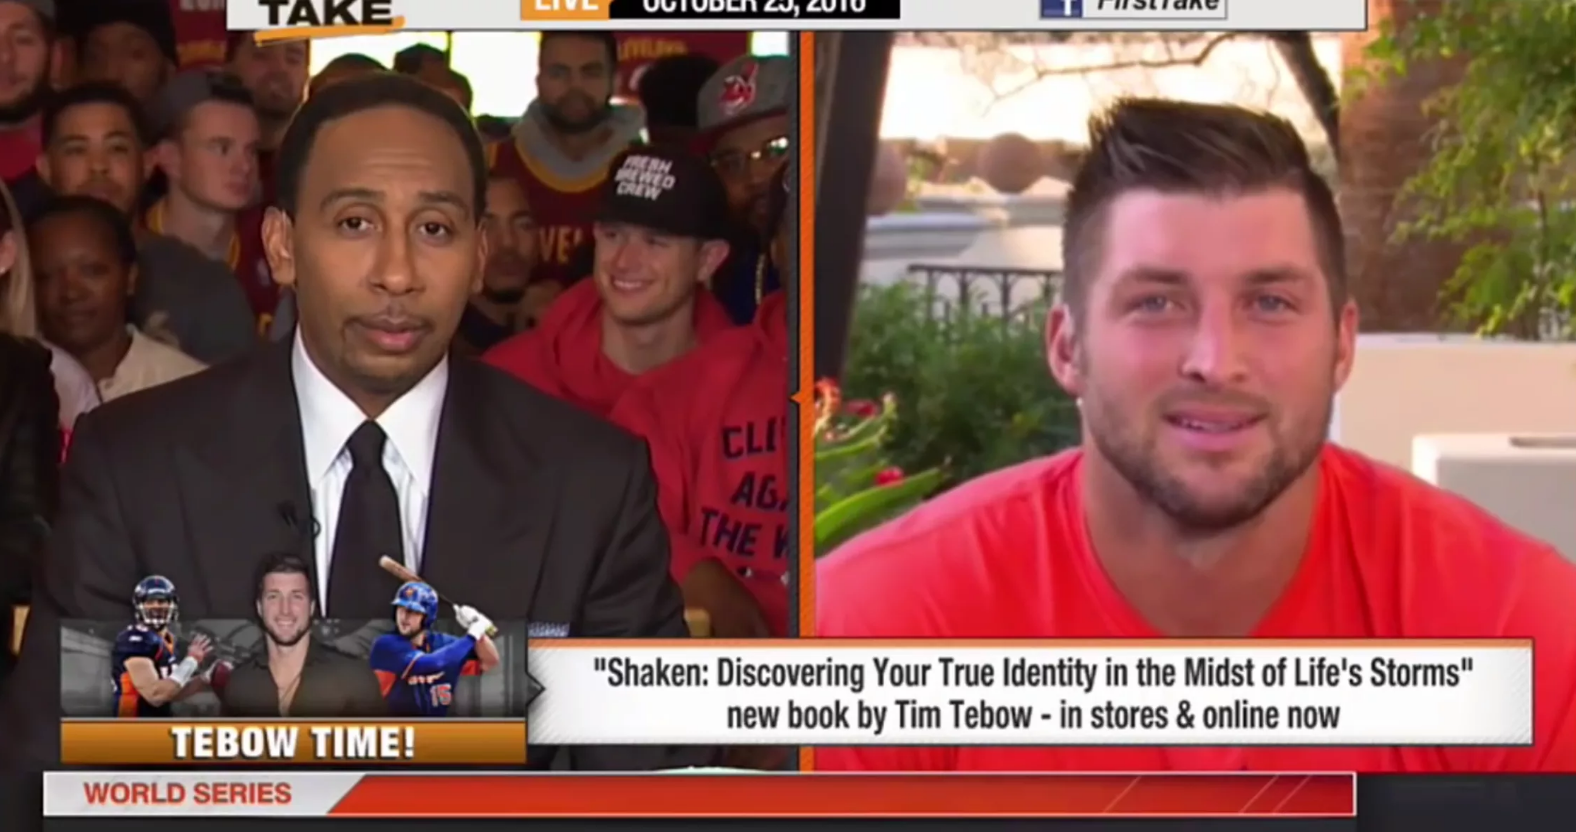 Tebow Defends Dreams Tim tebow, Storm news, True identity